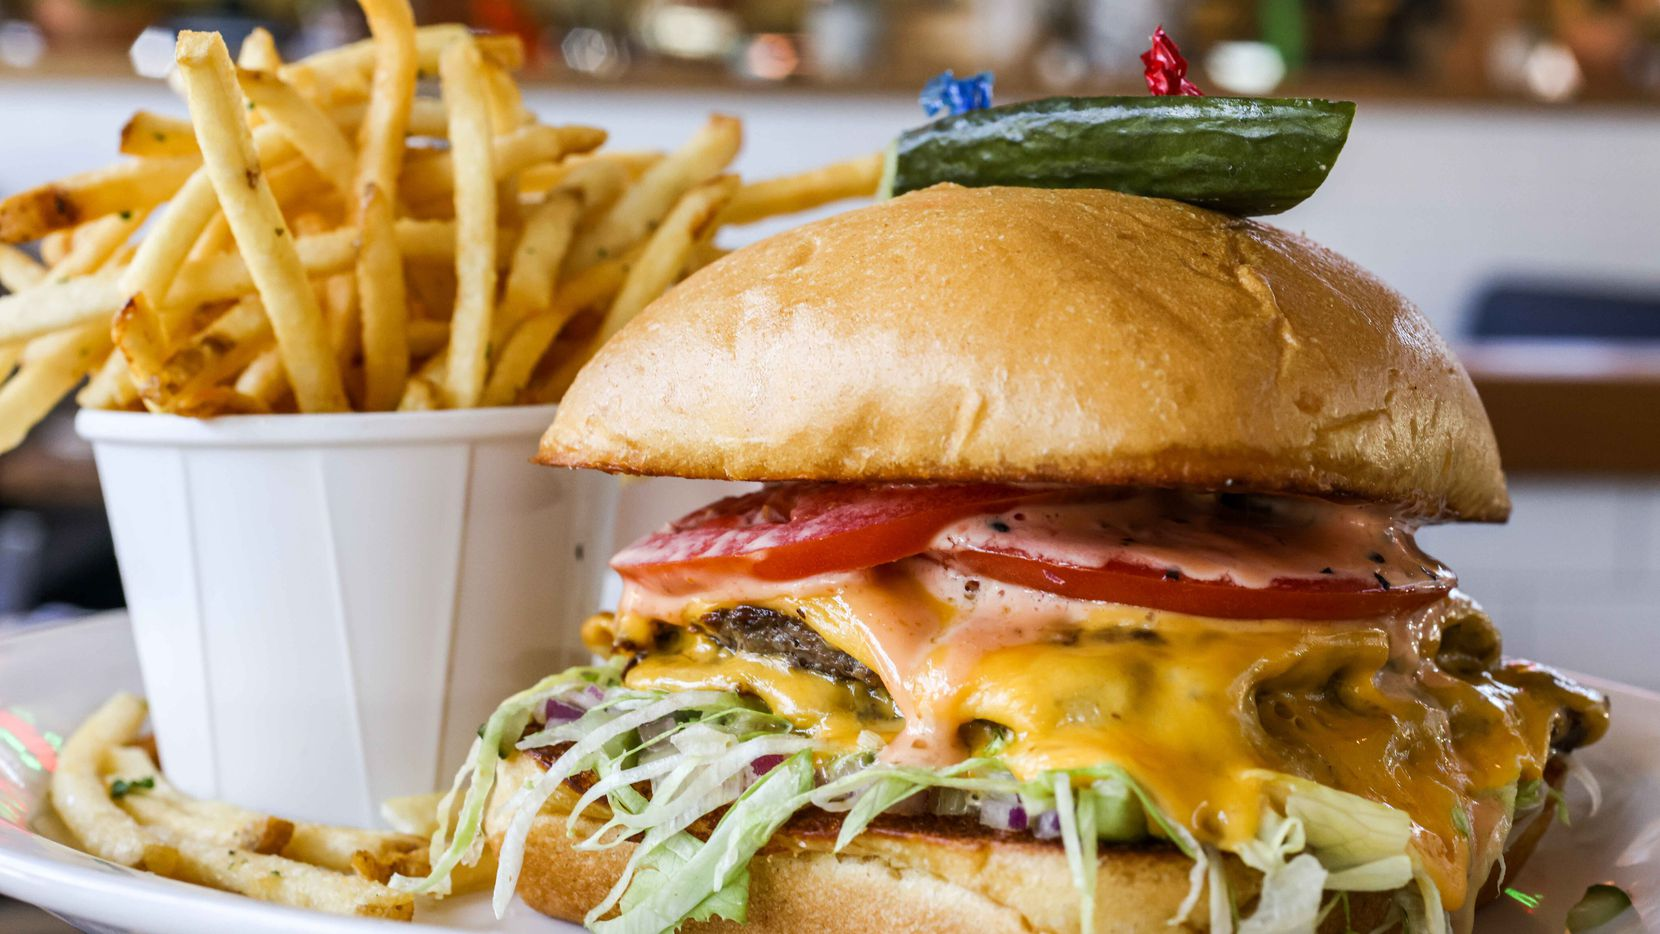 You want a burger? National Anthem, a new restaurant in downtown Dallas' East Quarter, has a gorgeous one.